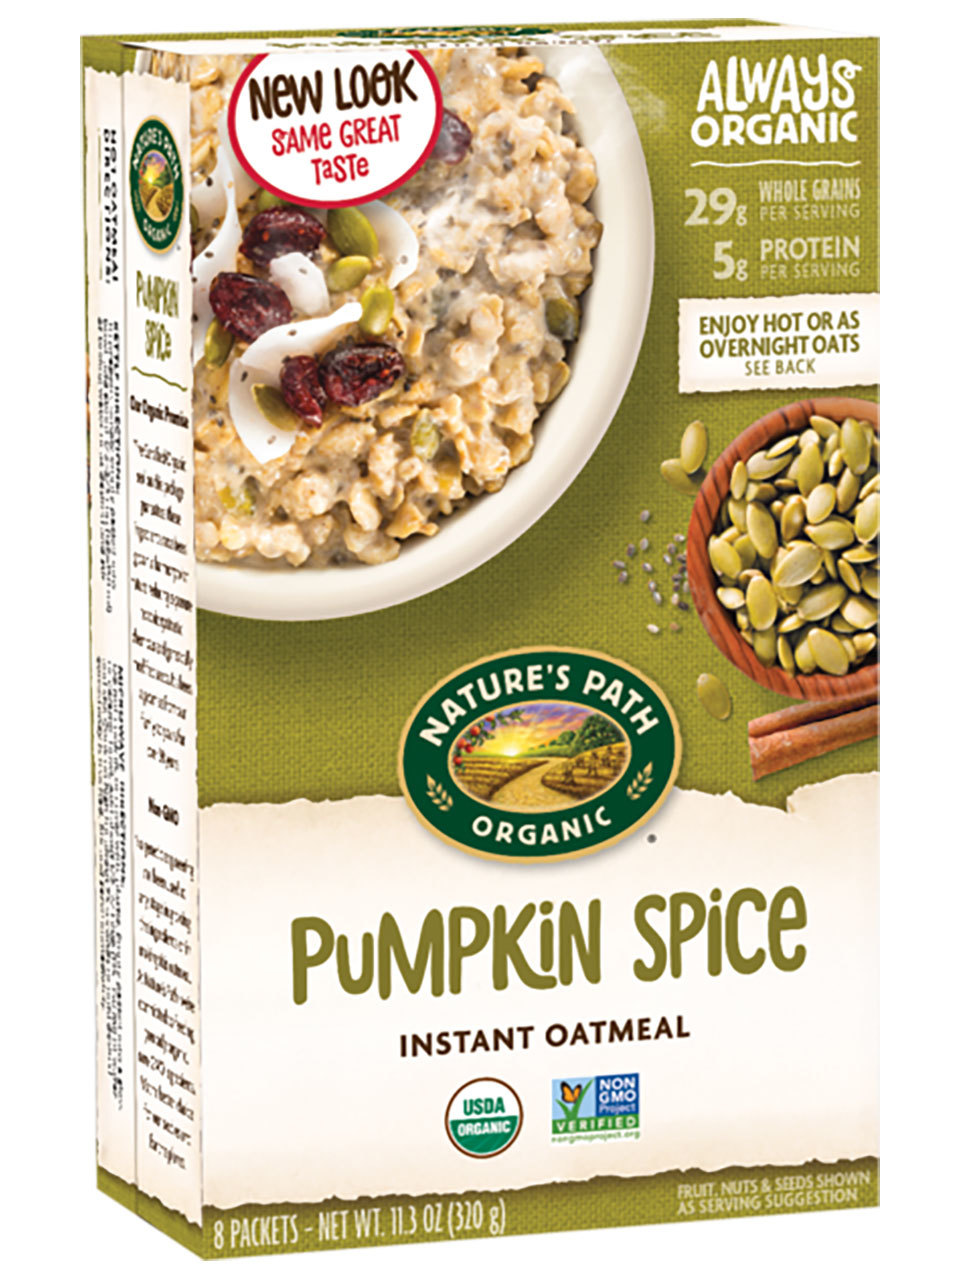 Nature's Path Pumpkin Spice Chia Instant Oatmeal in package